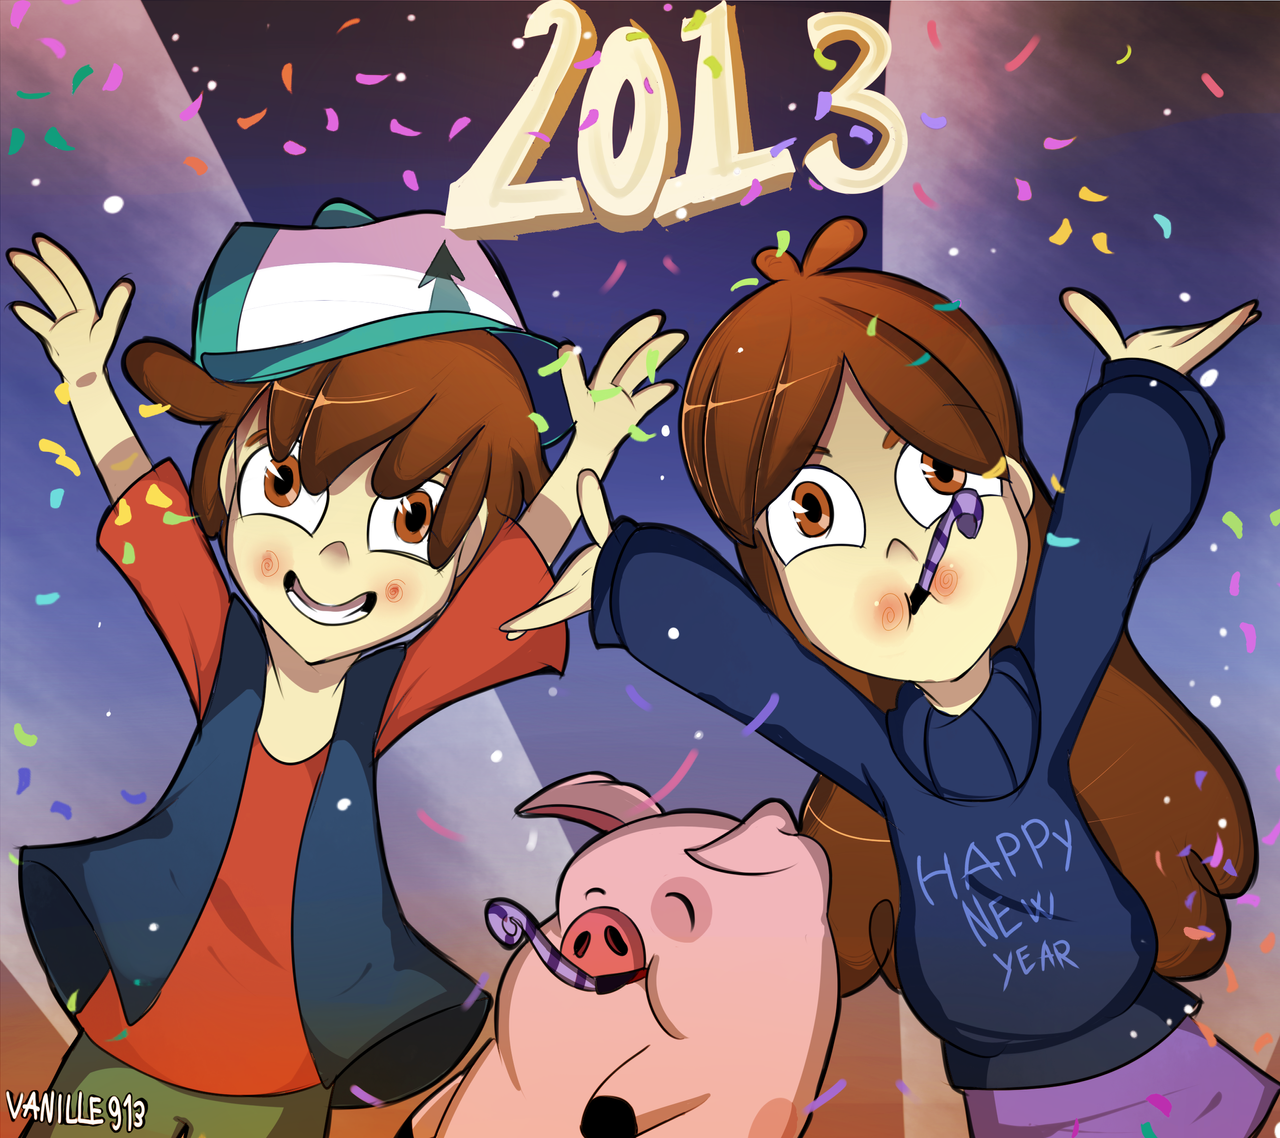 Happy New Year by vanille913